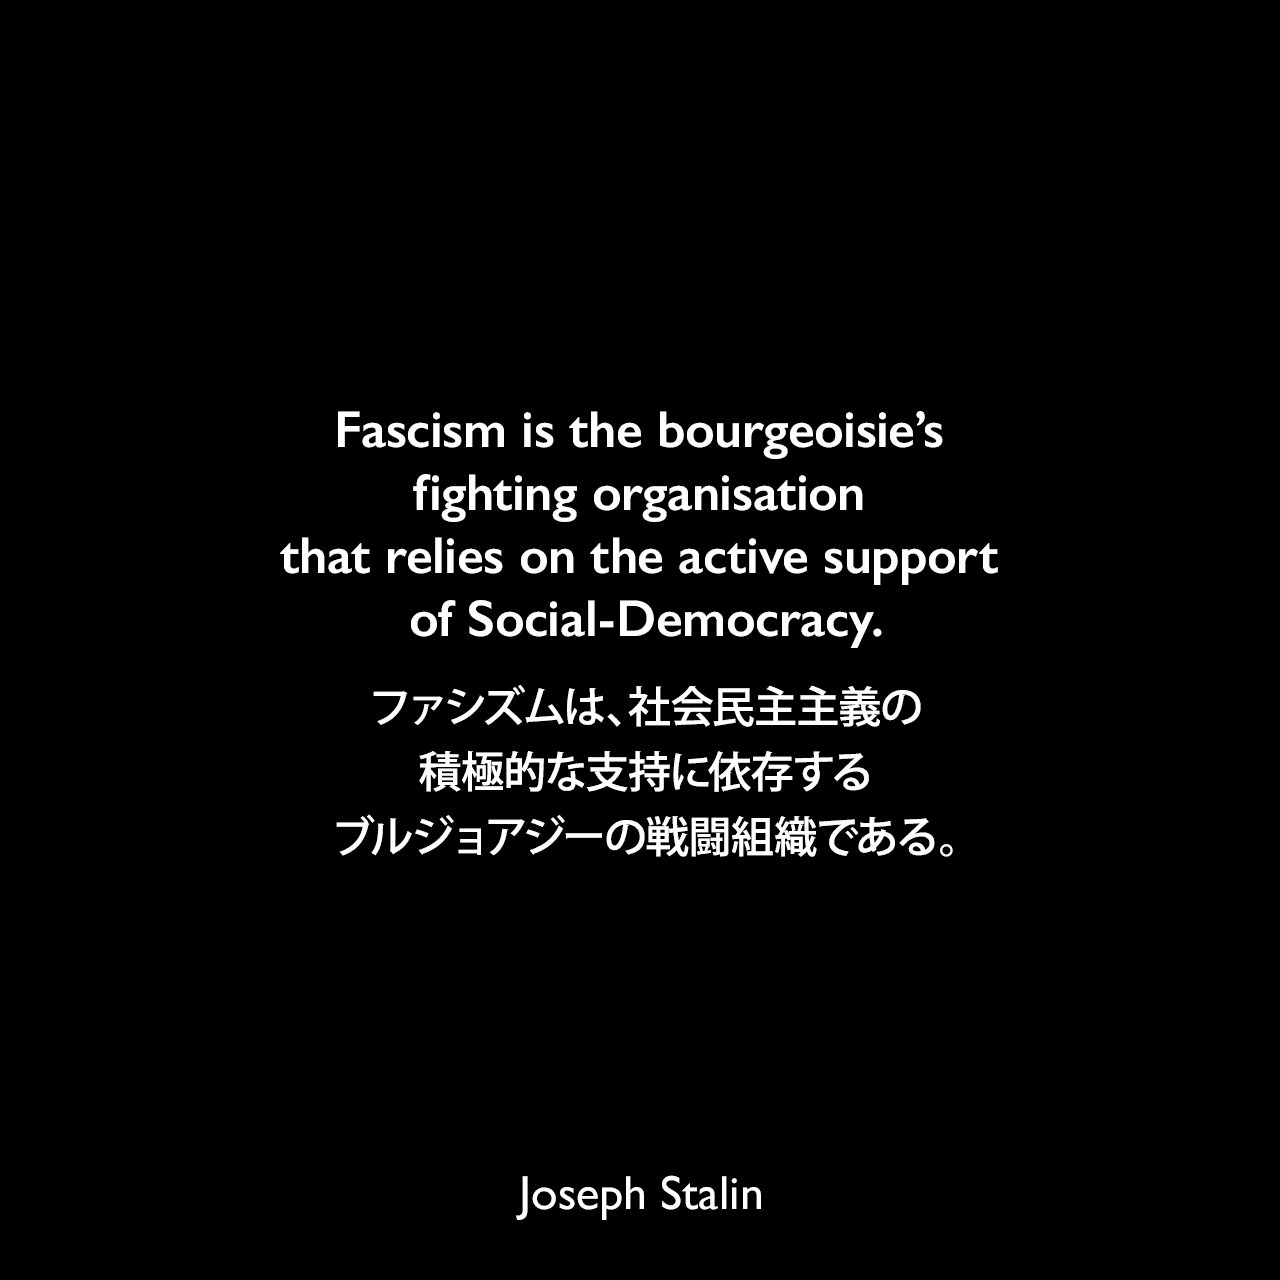 Fascism is the bourgeoisie's fighting organisation that relies on the active support of Social-Democracy.ファシズムは、社会民主主義の積極的な支持に依存するブルジョアジーの戦闘組織である。- 1924年1月〜11月 スターリンによるレポート「Concerning the International Situation」よりJoseph Stalin